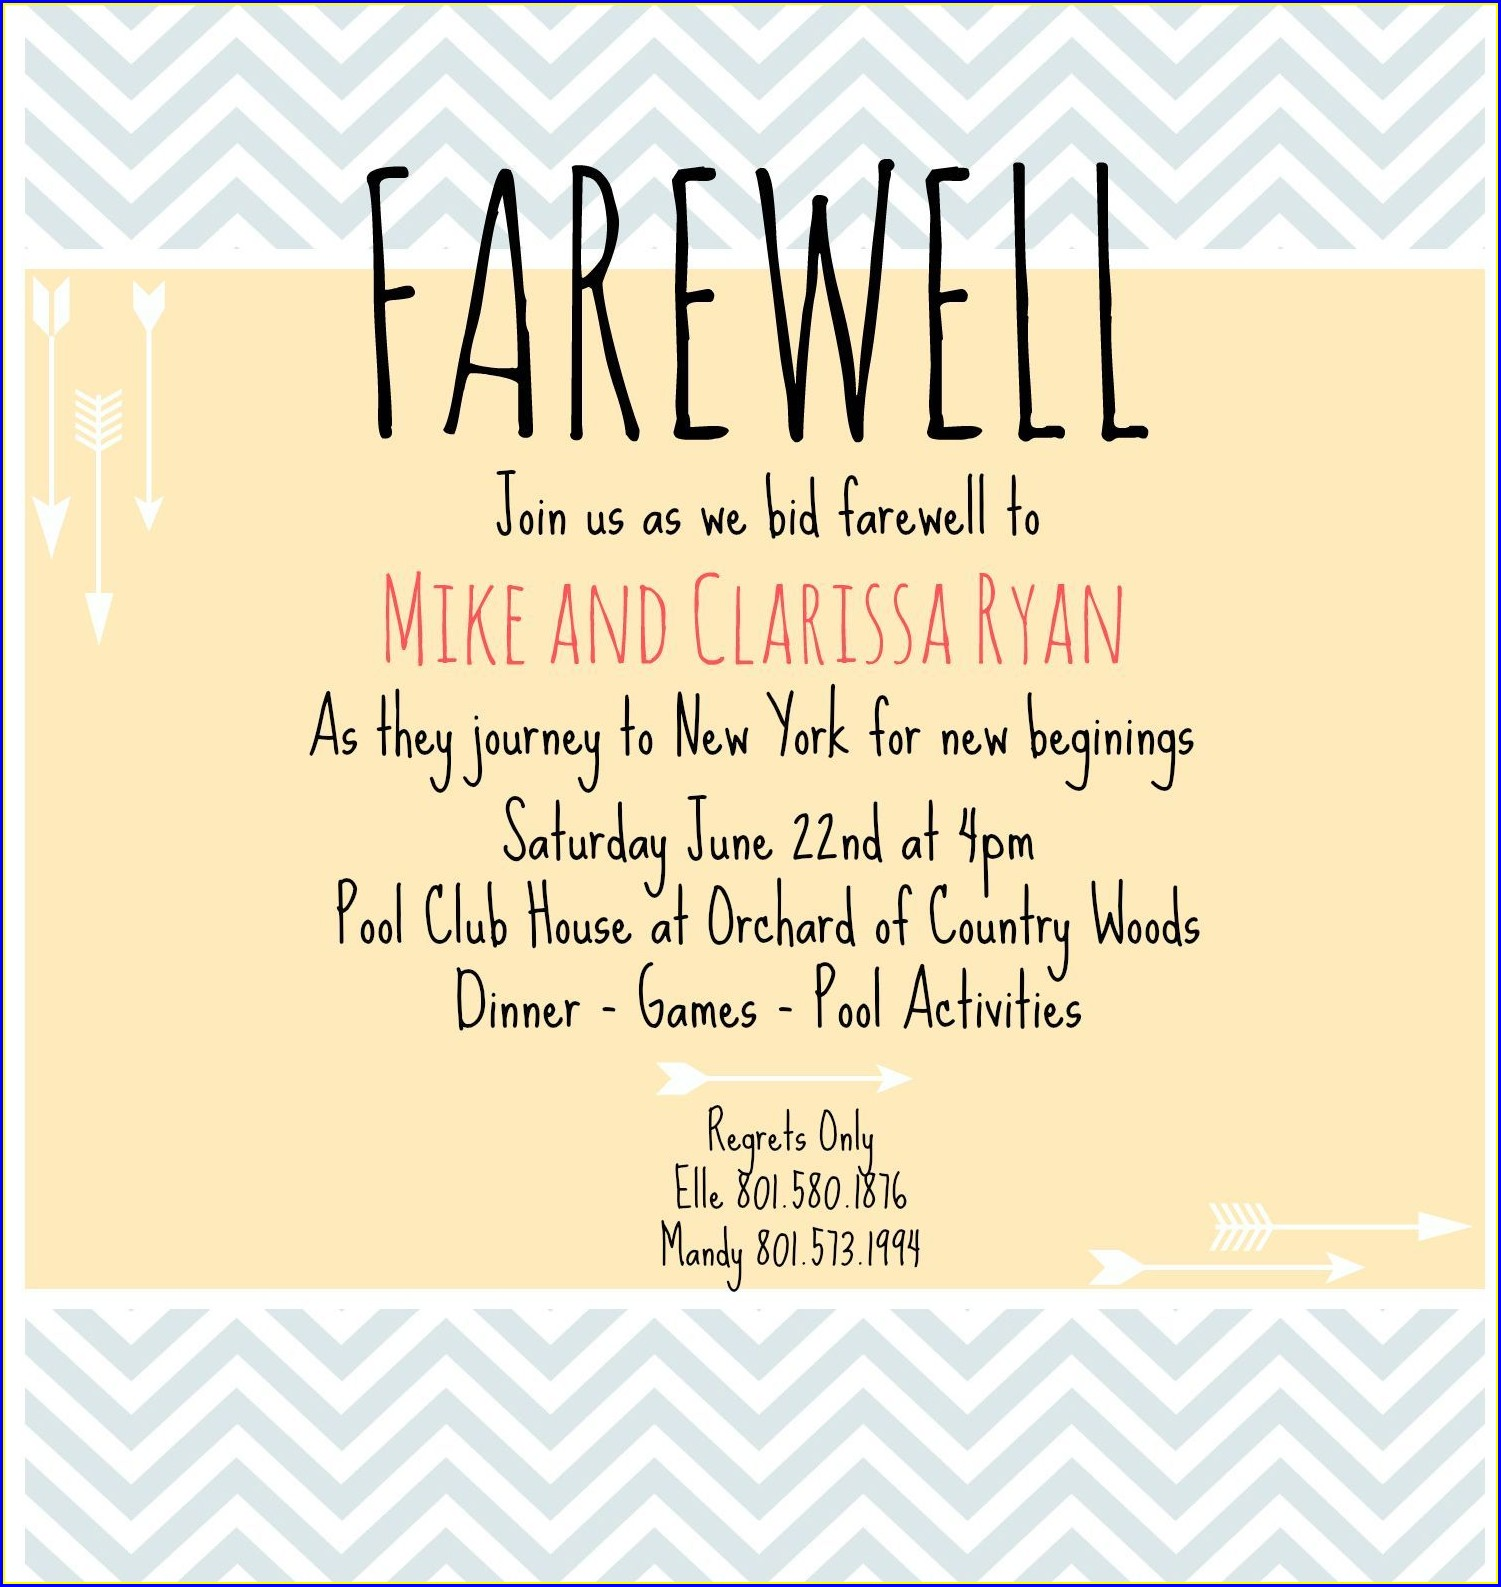 Farewell Lunch Email Invitation For Coworker